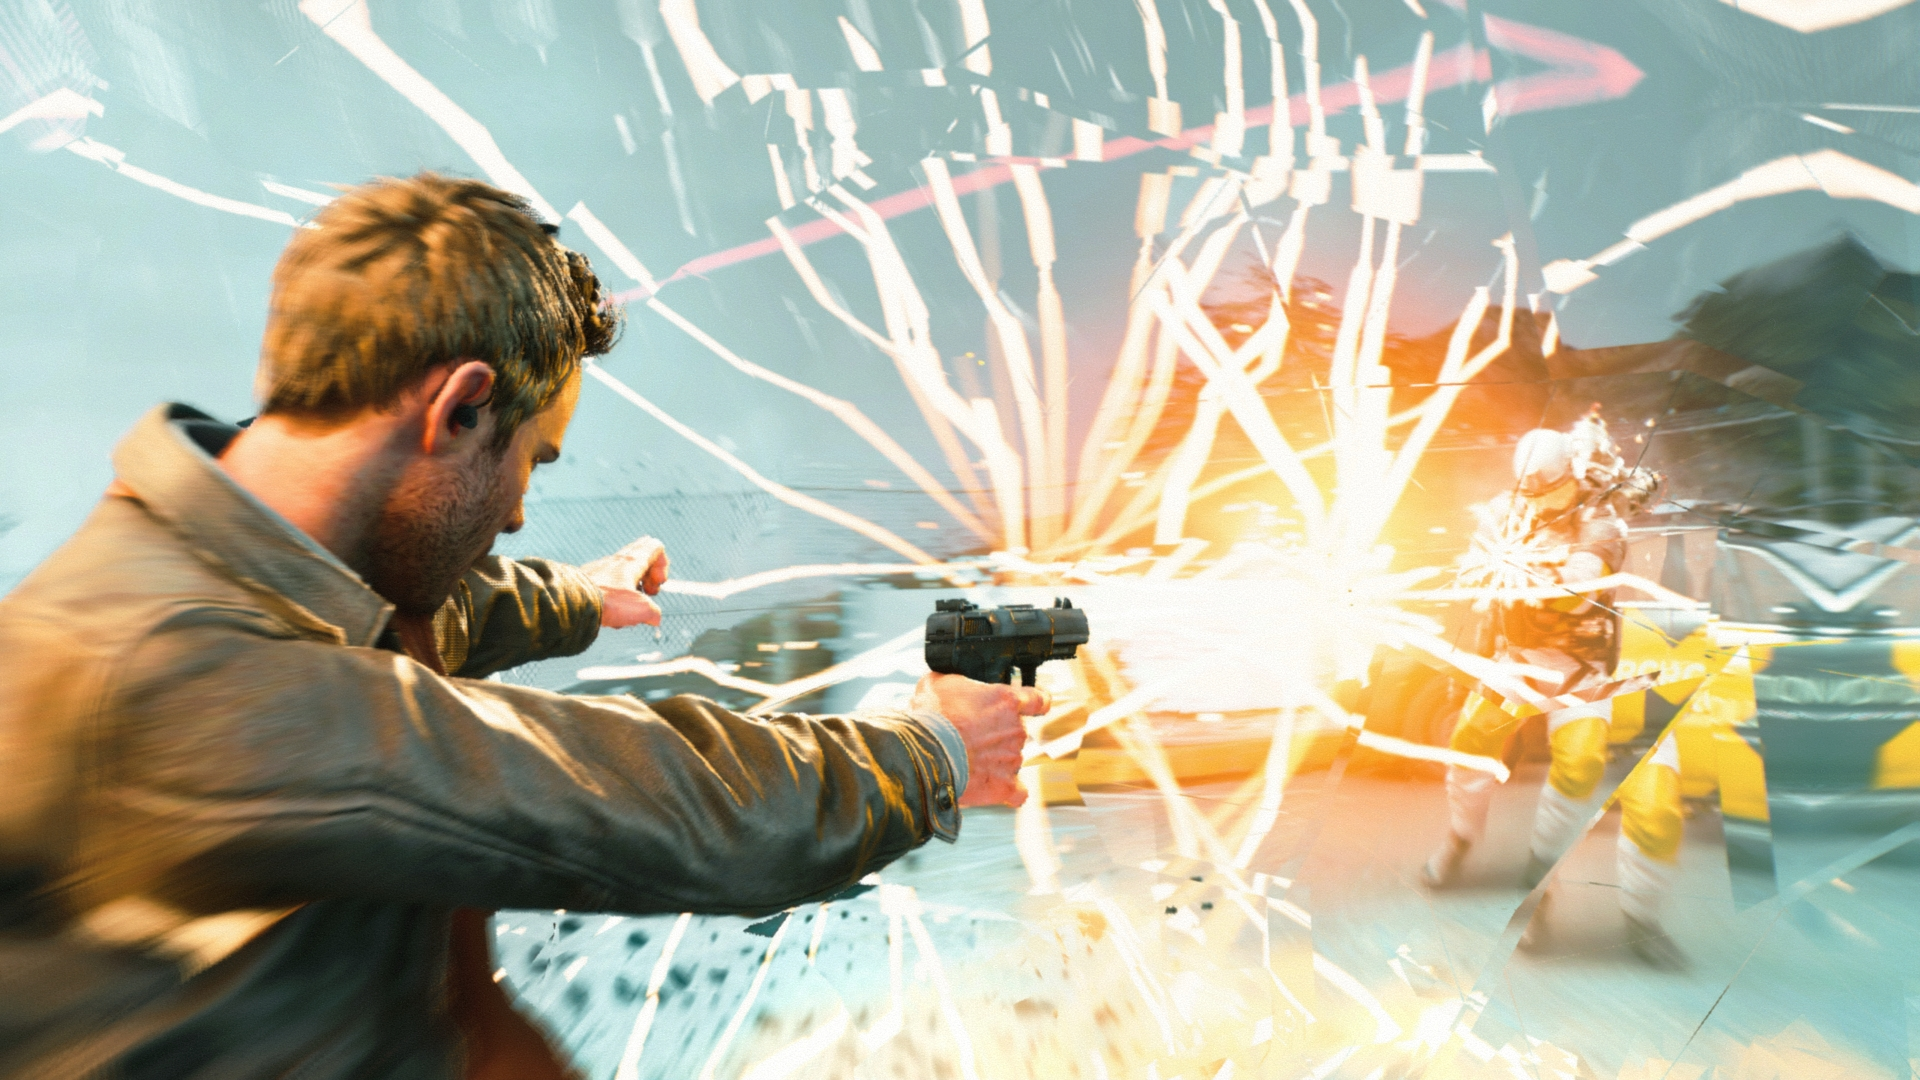 Quantum Break image 1